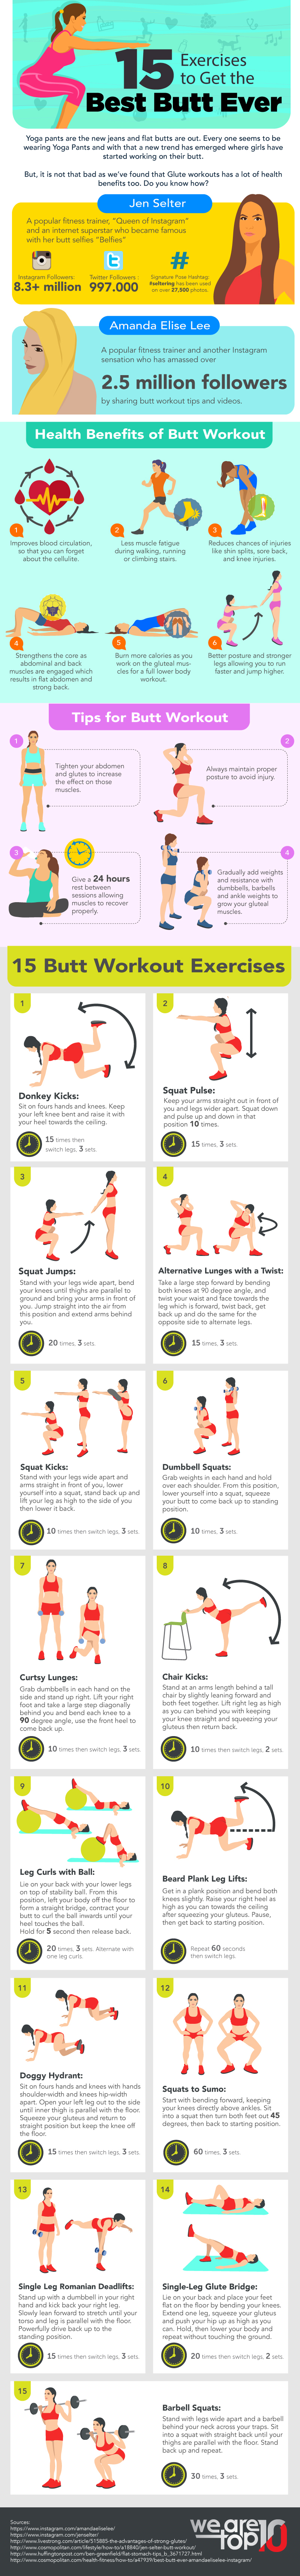 15-Exercises-to-get-Best-Butt-Ever-Revised